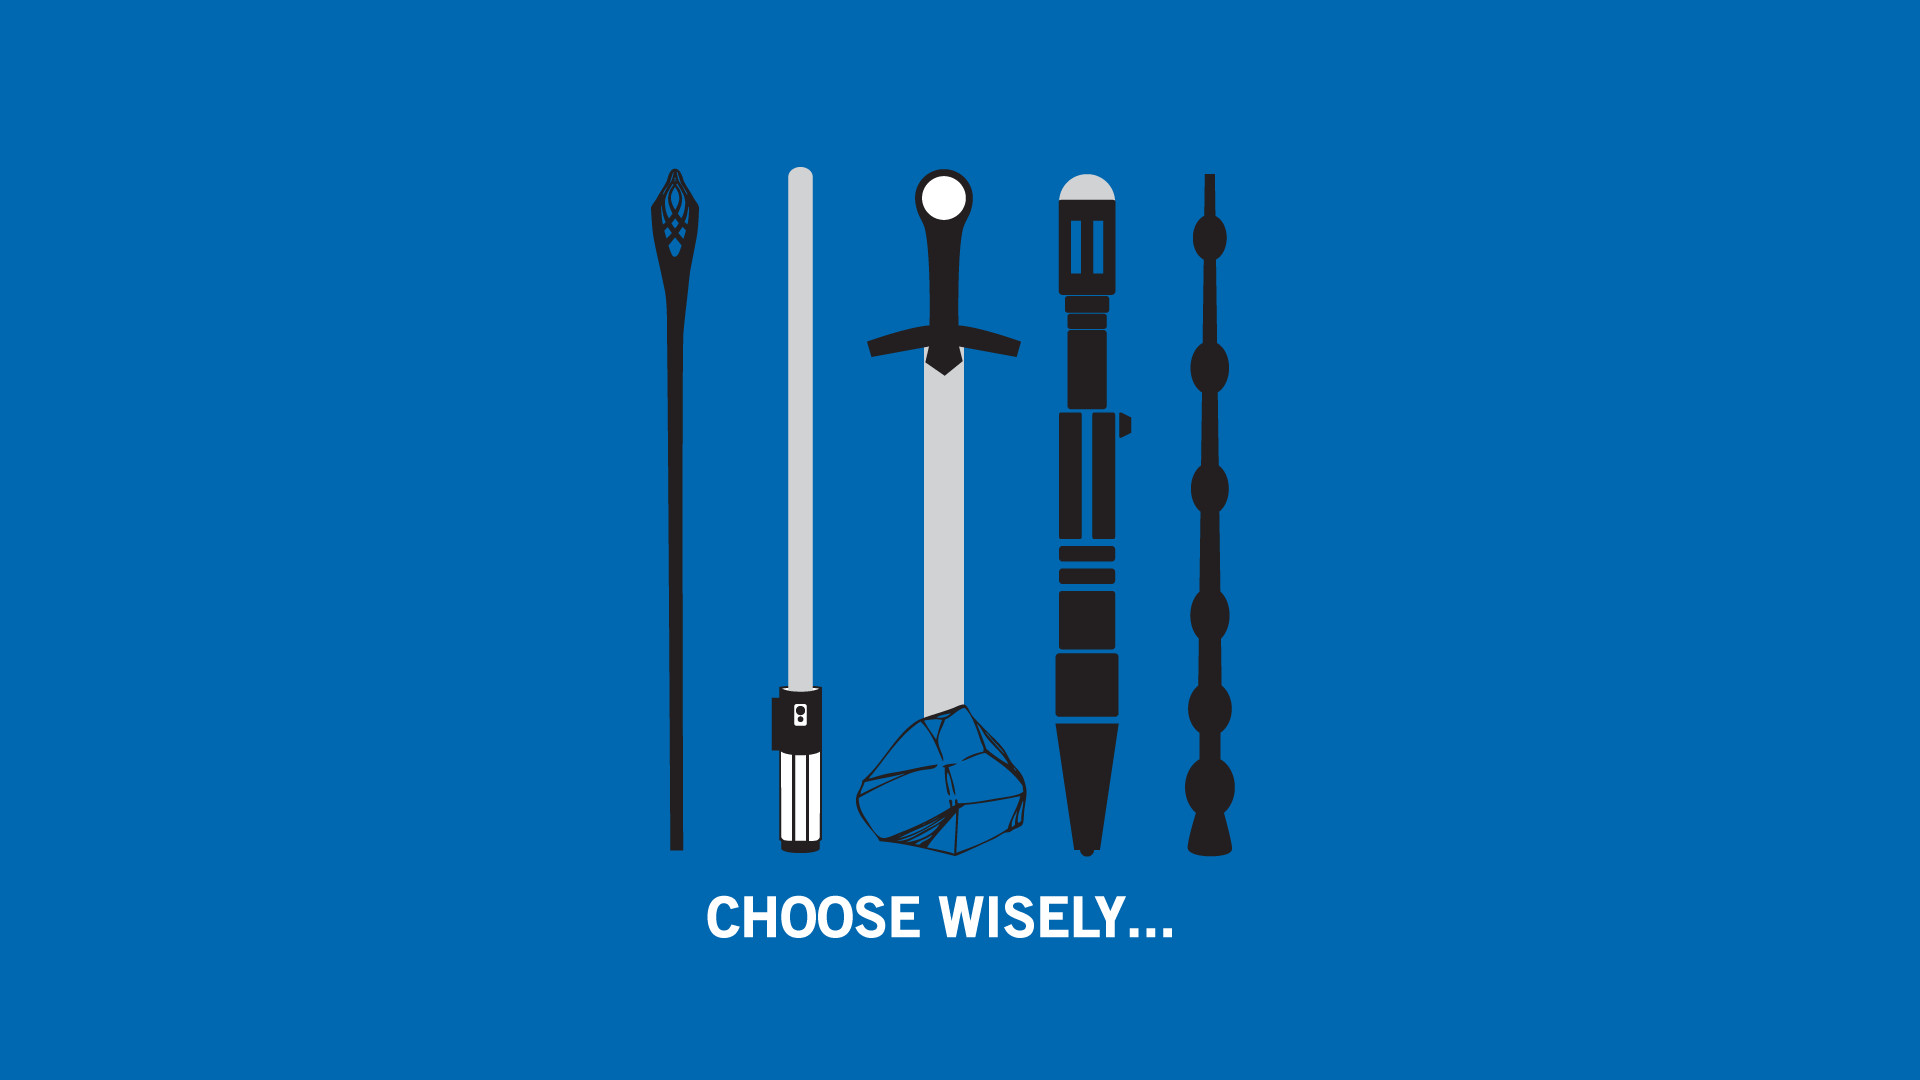 Caliburn Crossovers Doctor Who Funny Harry Potter Lightsabers Minimalistic  Star Wars Wand